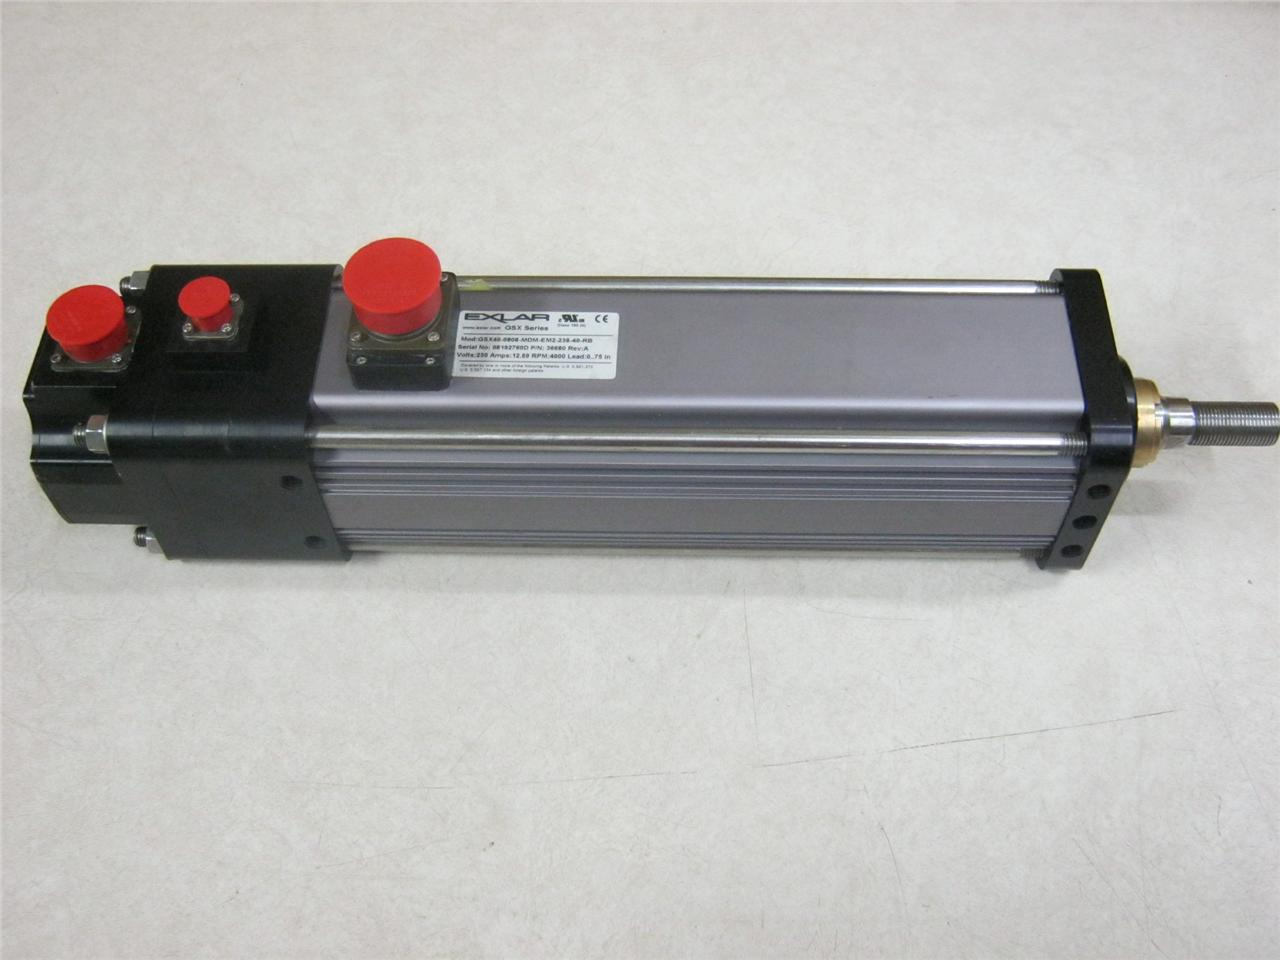 Exlar gsx series linear actuator gsx40 0808 mdm em2 238 40 for Servo motor linear actuator